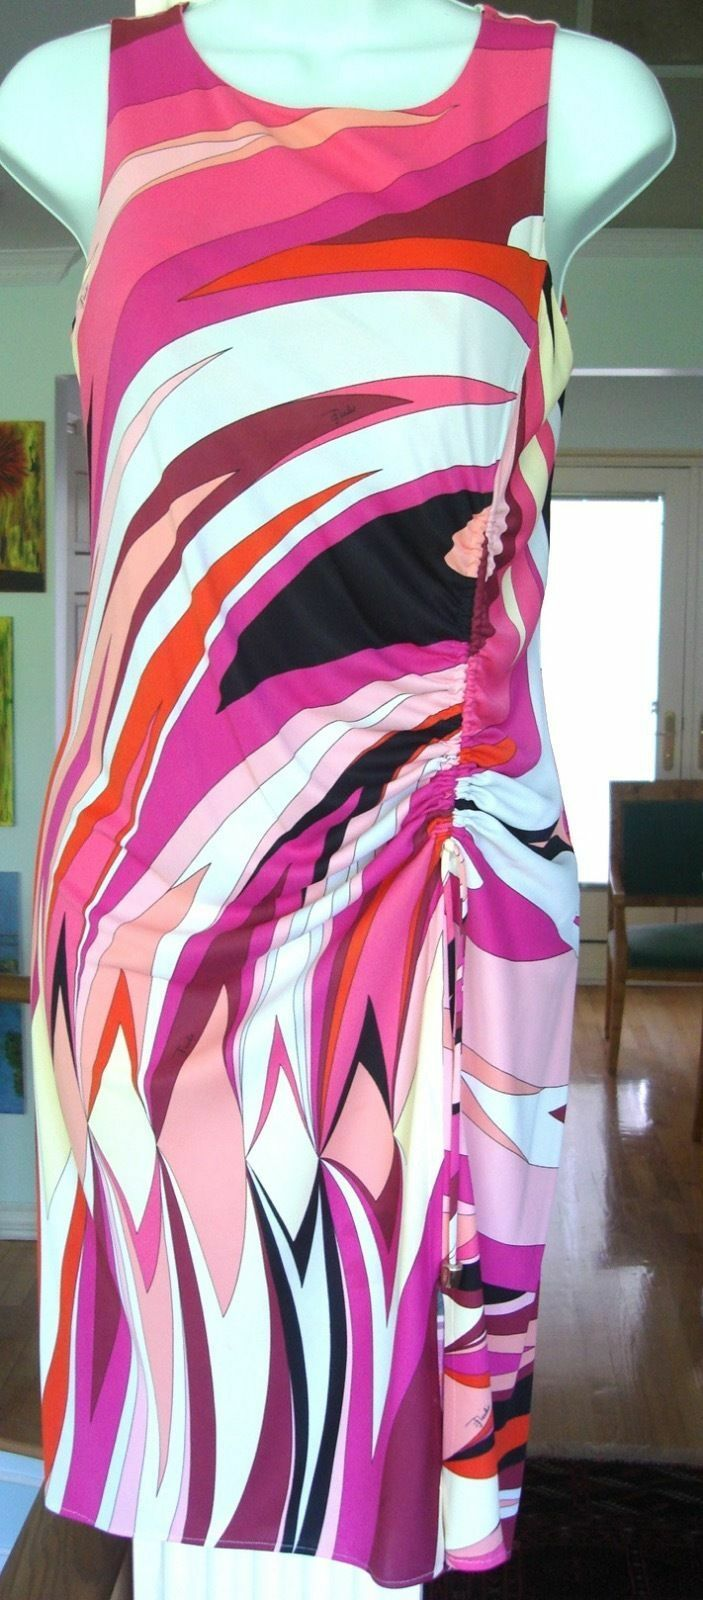 Emilio Pucci Dress, I40 US 2 4,NWT, Saks